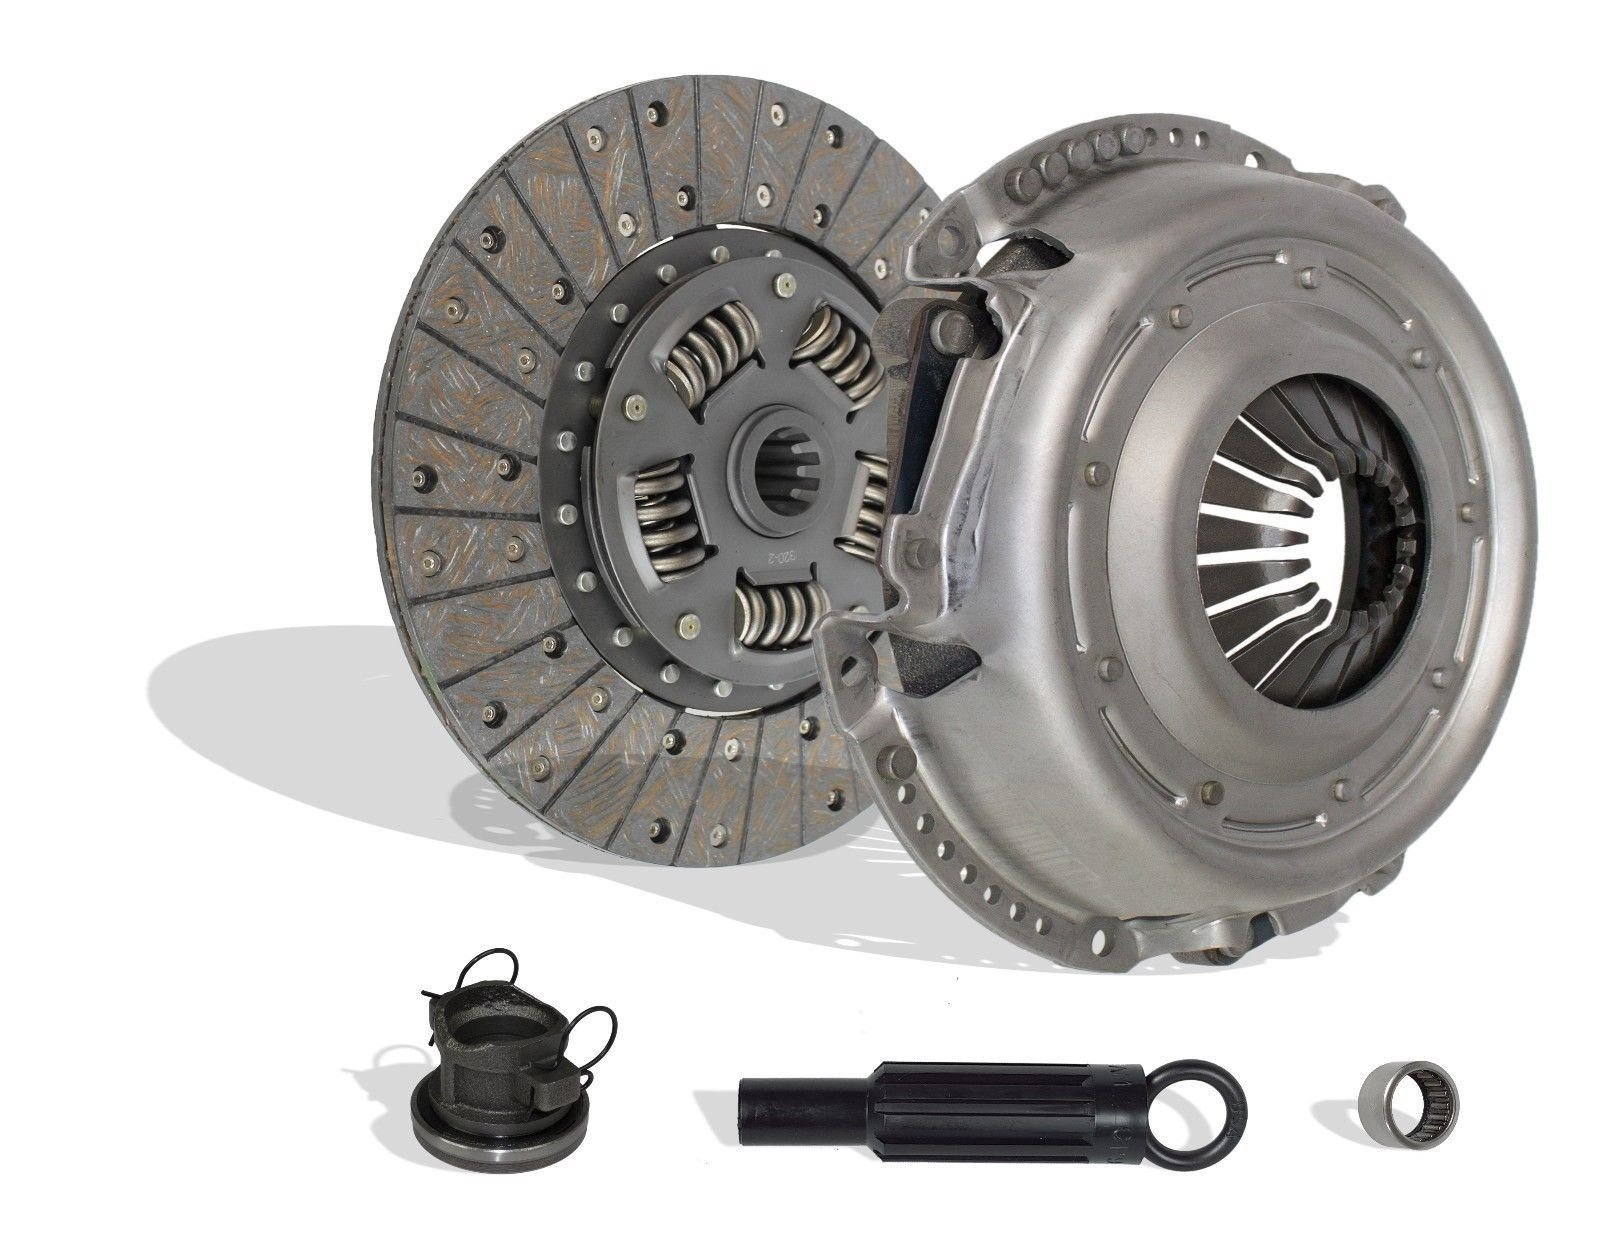 Clutch Kit Works With Jeep Wrangler Unlimited X Sport Rubicon Sahara 70th Anniversary Sport Utility X 2007-2011 3.8L V6 GAS OHV Naturally Aspirated